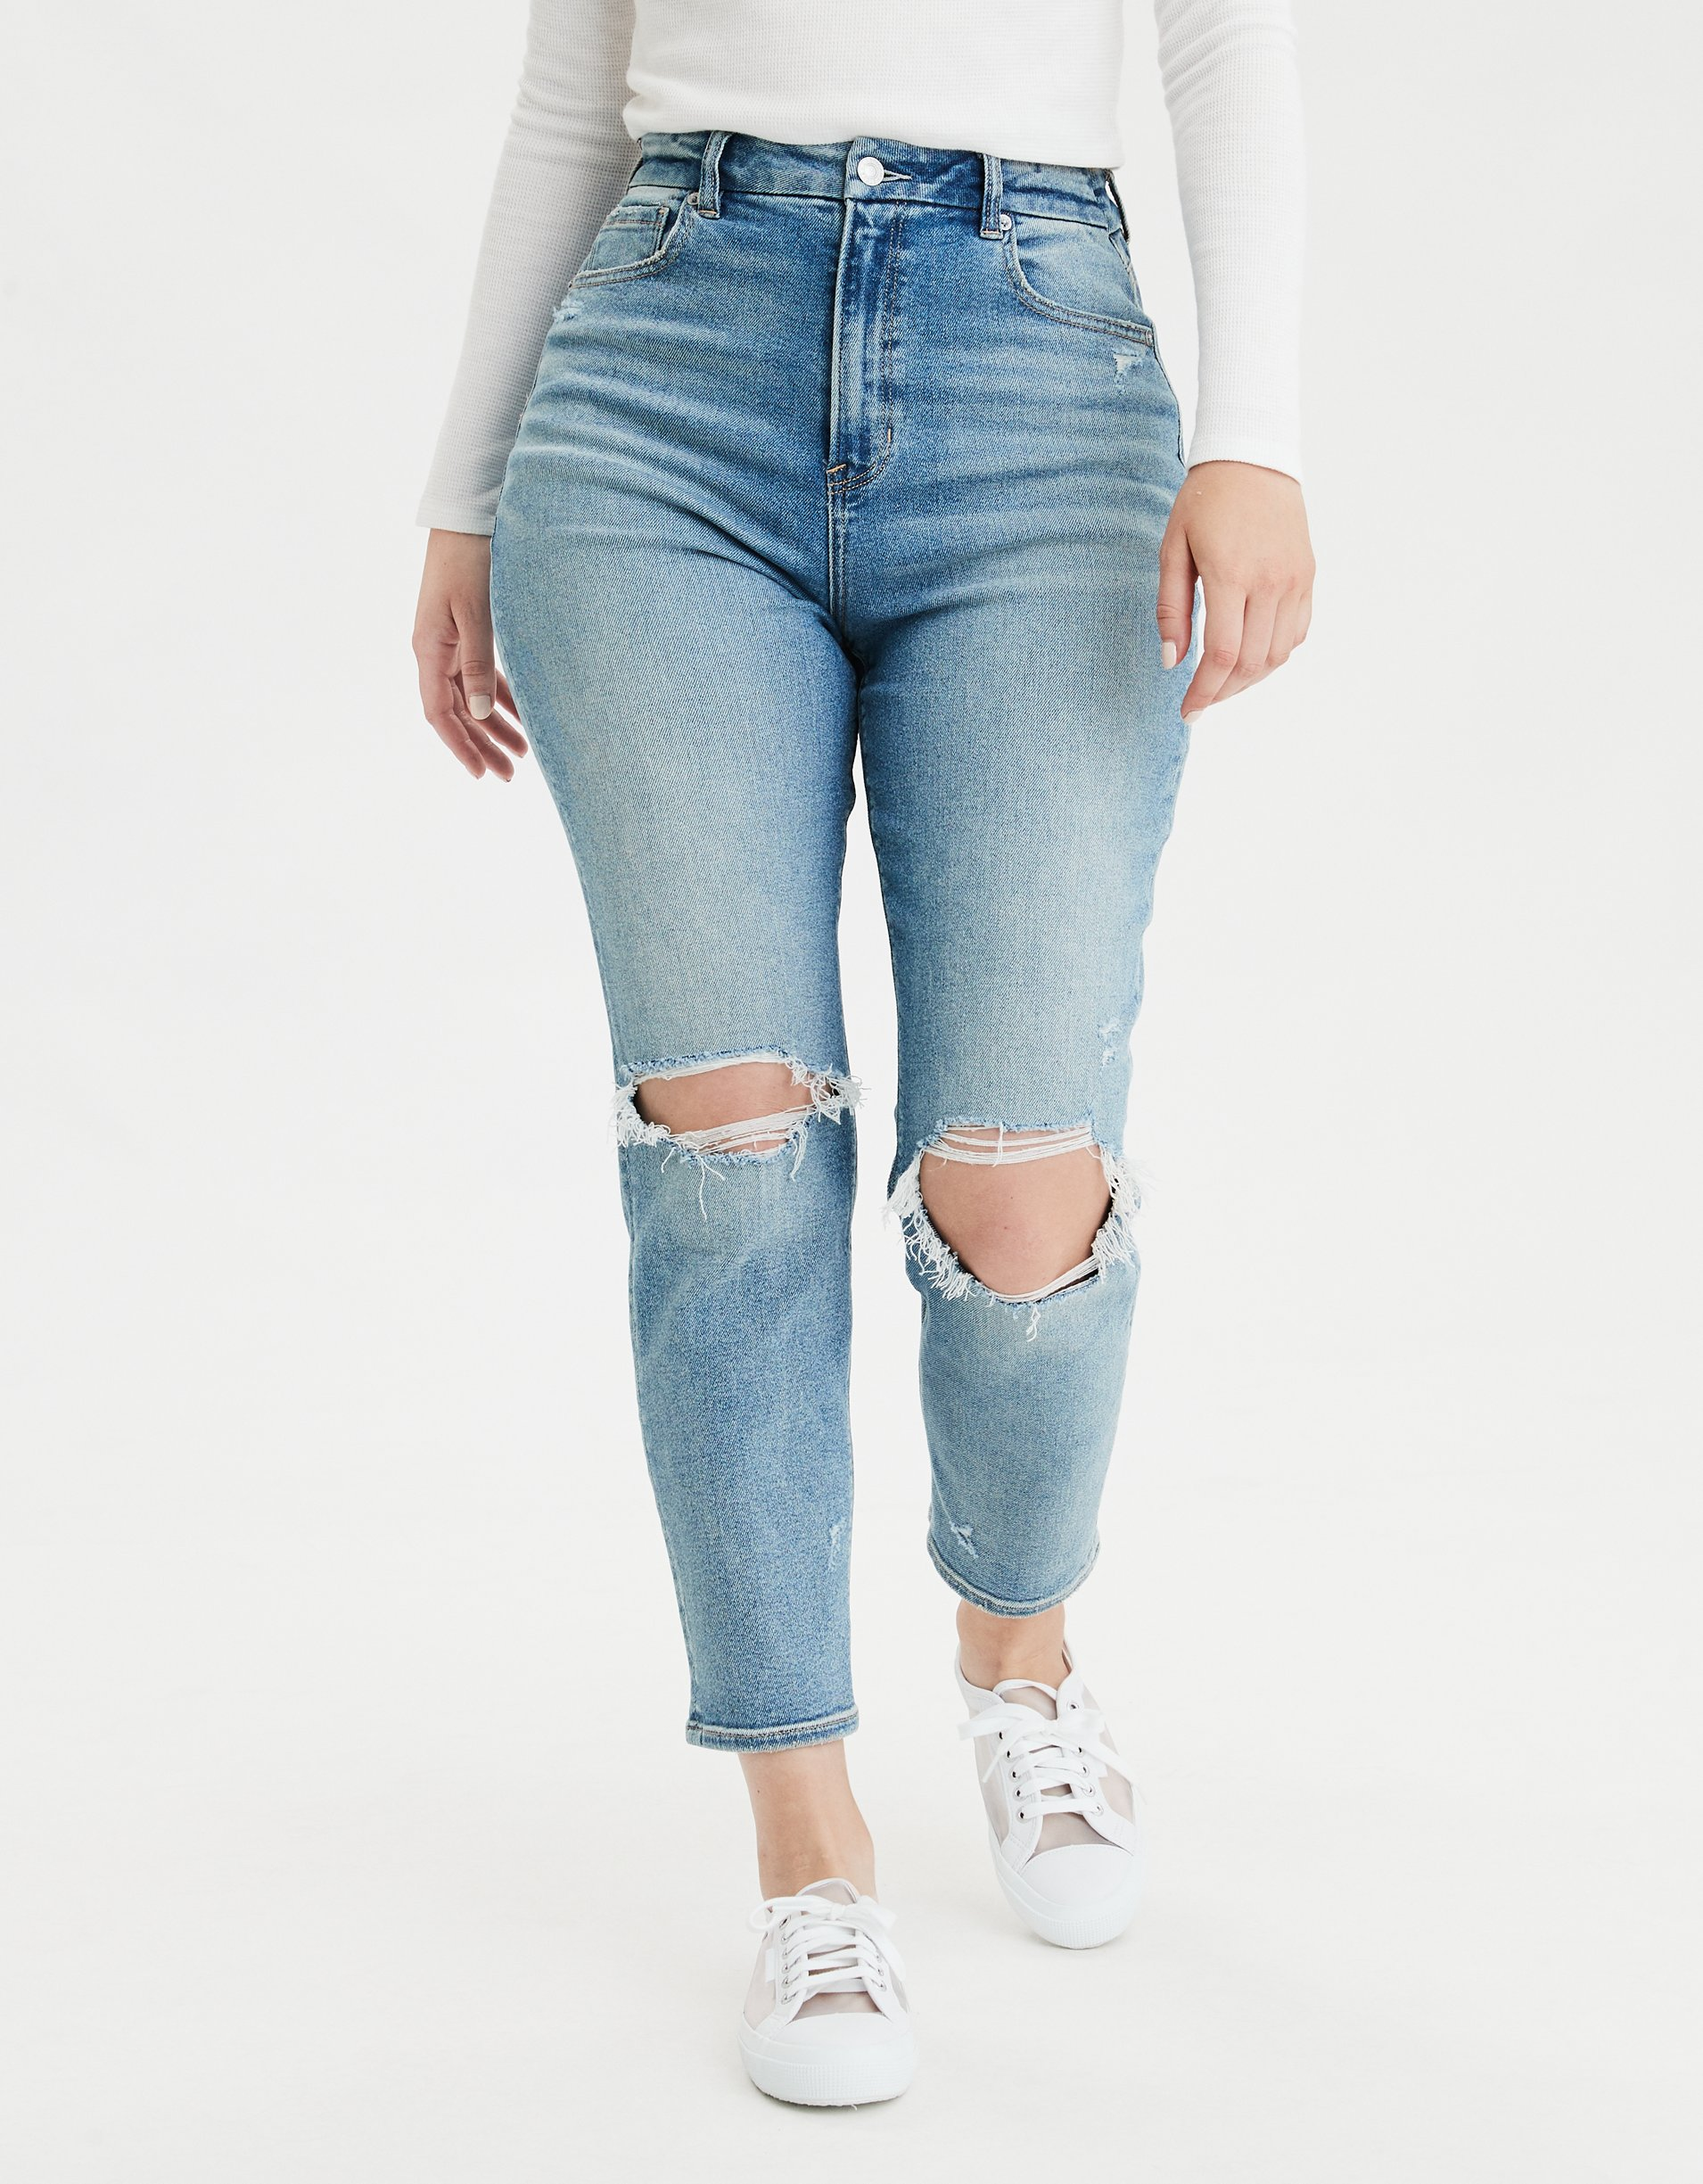 woman wearing AE Stretch Ripped Curvy Mom Jean, white top, and white sneakers